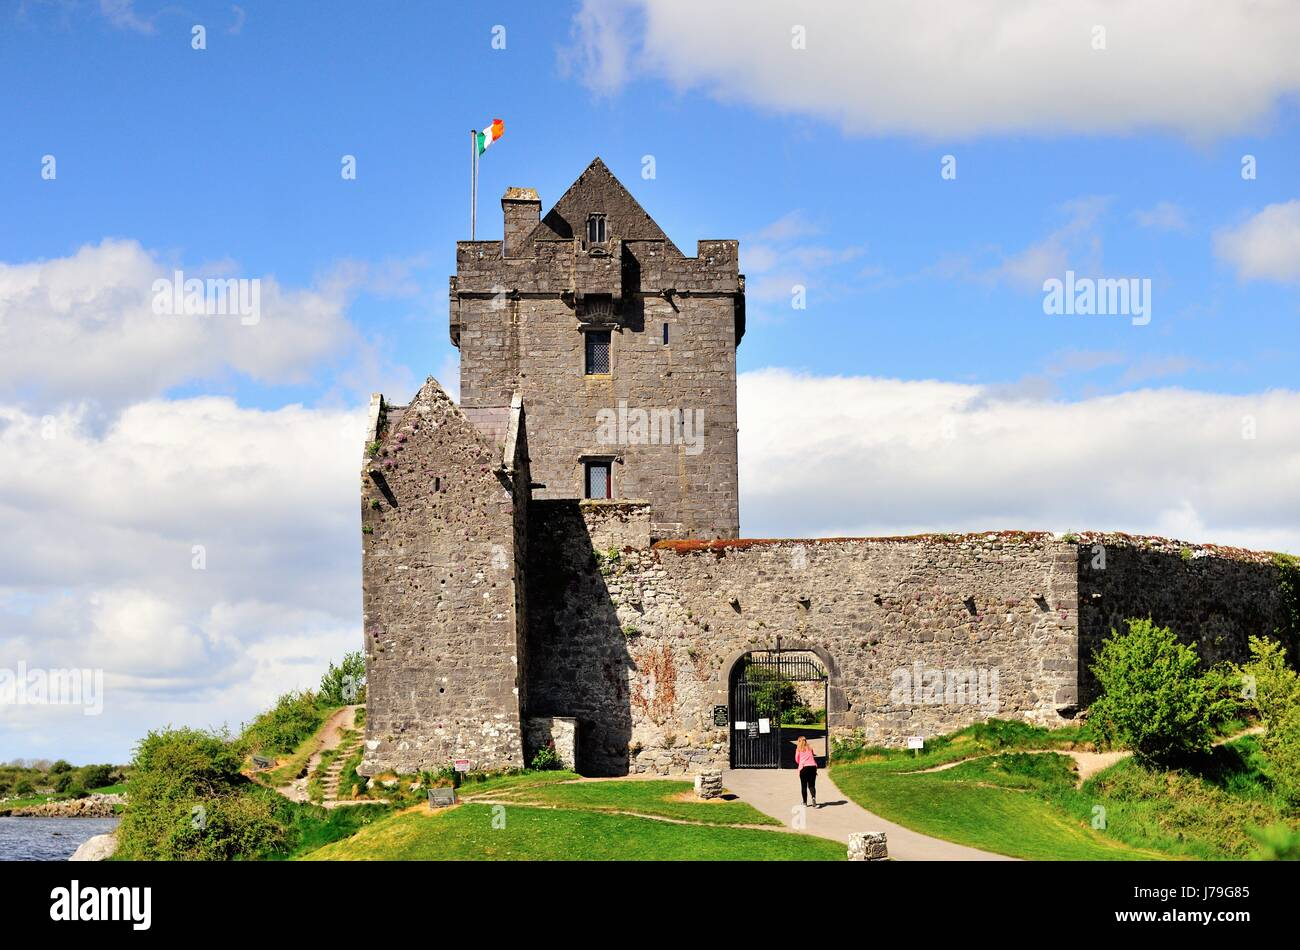 Dunguaire Castle in Kinvara, County Galway, Ireland. Dunguaire Castle was built in the 16th century. - Stock Image